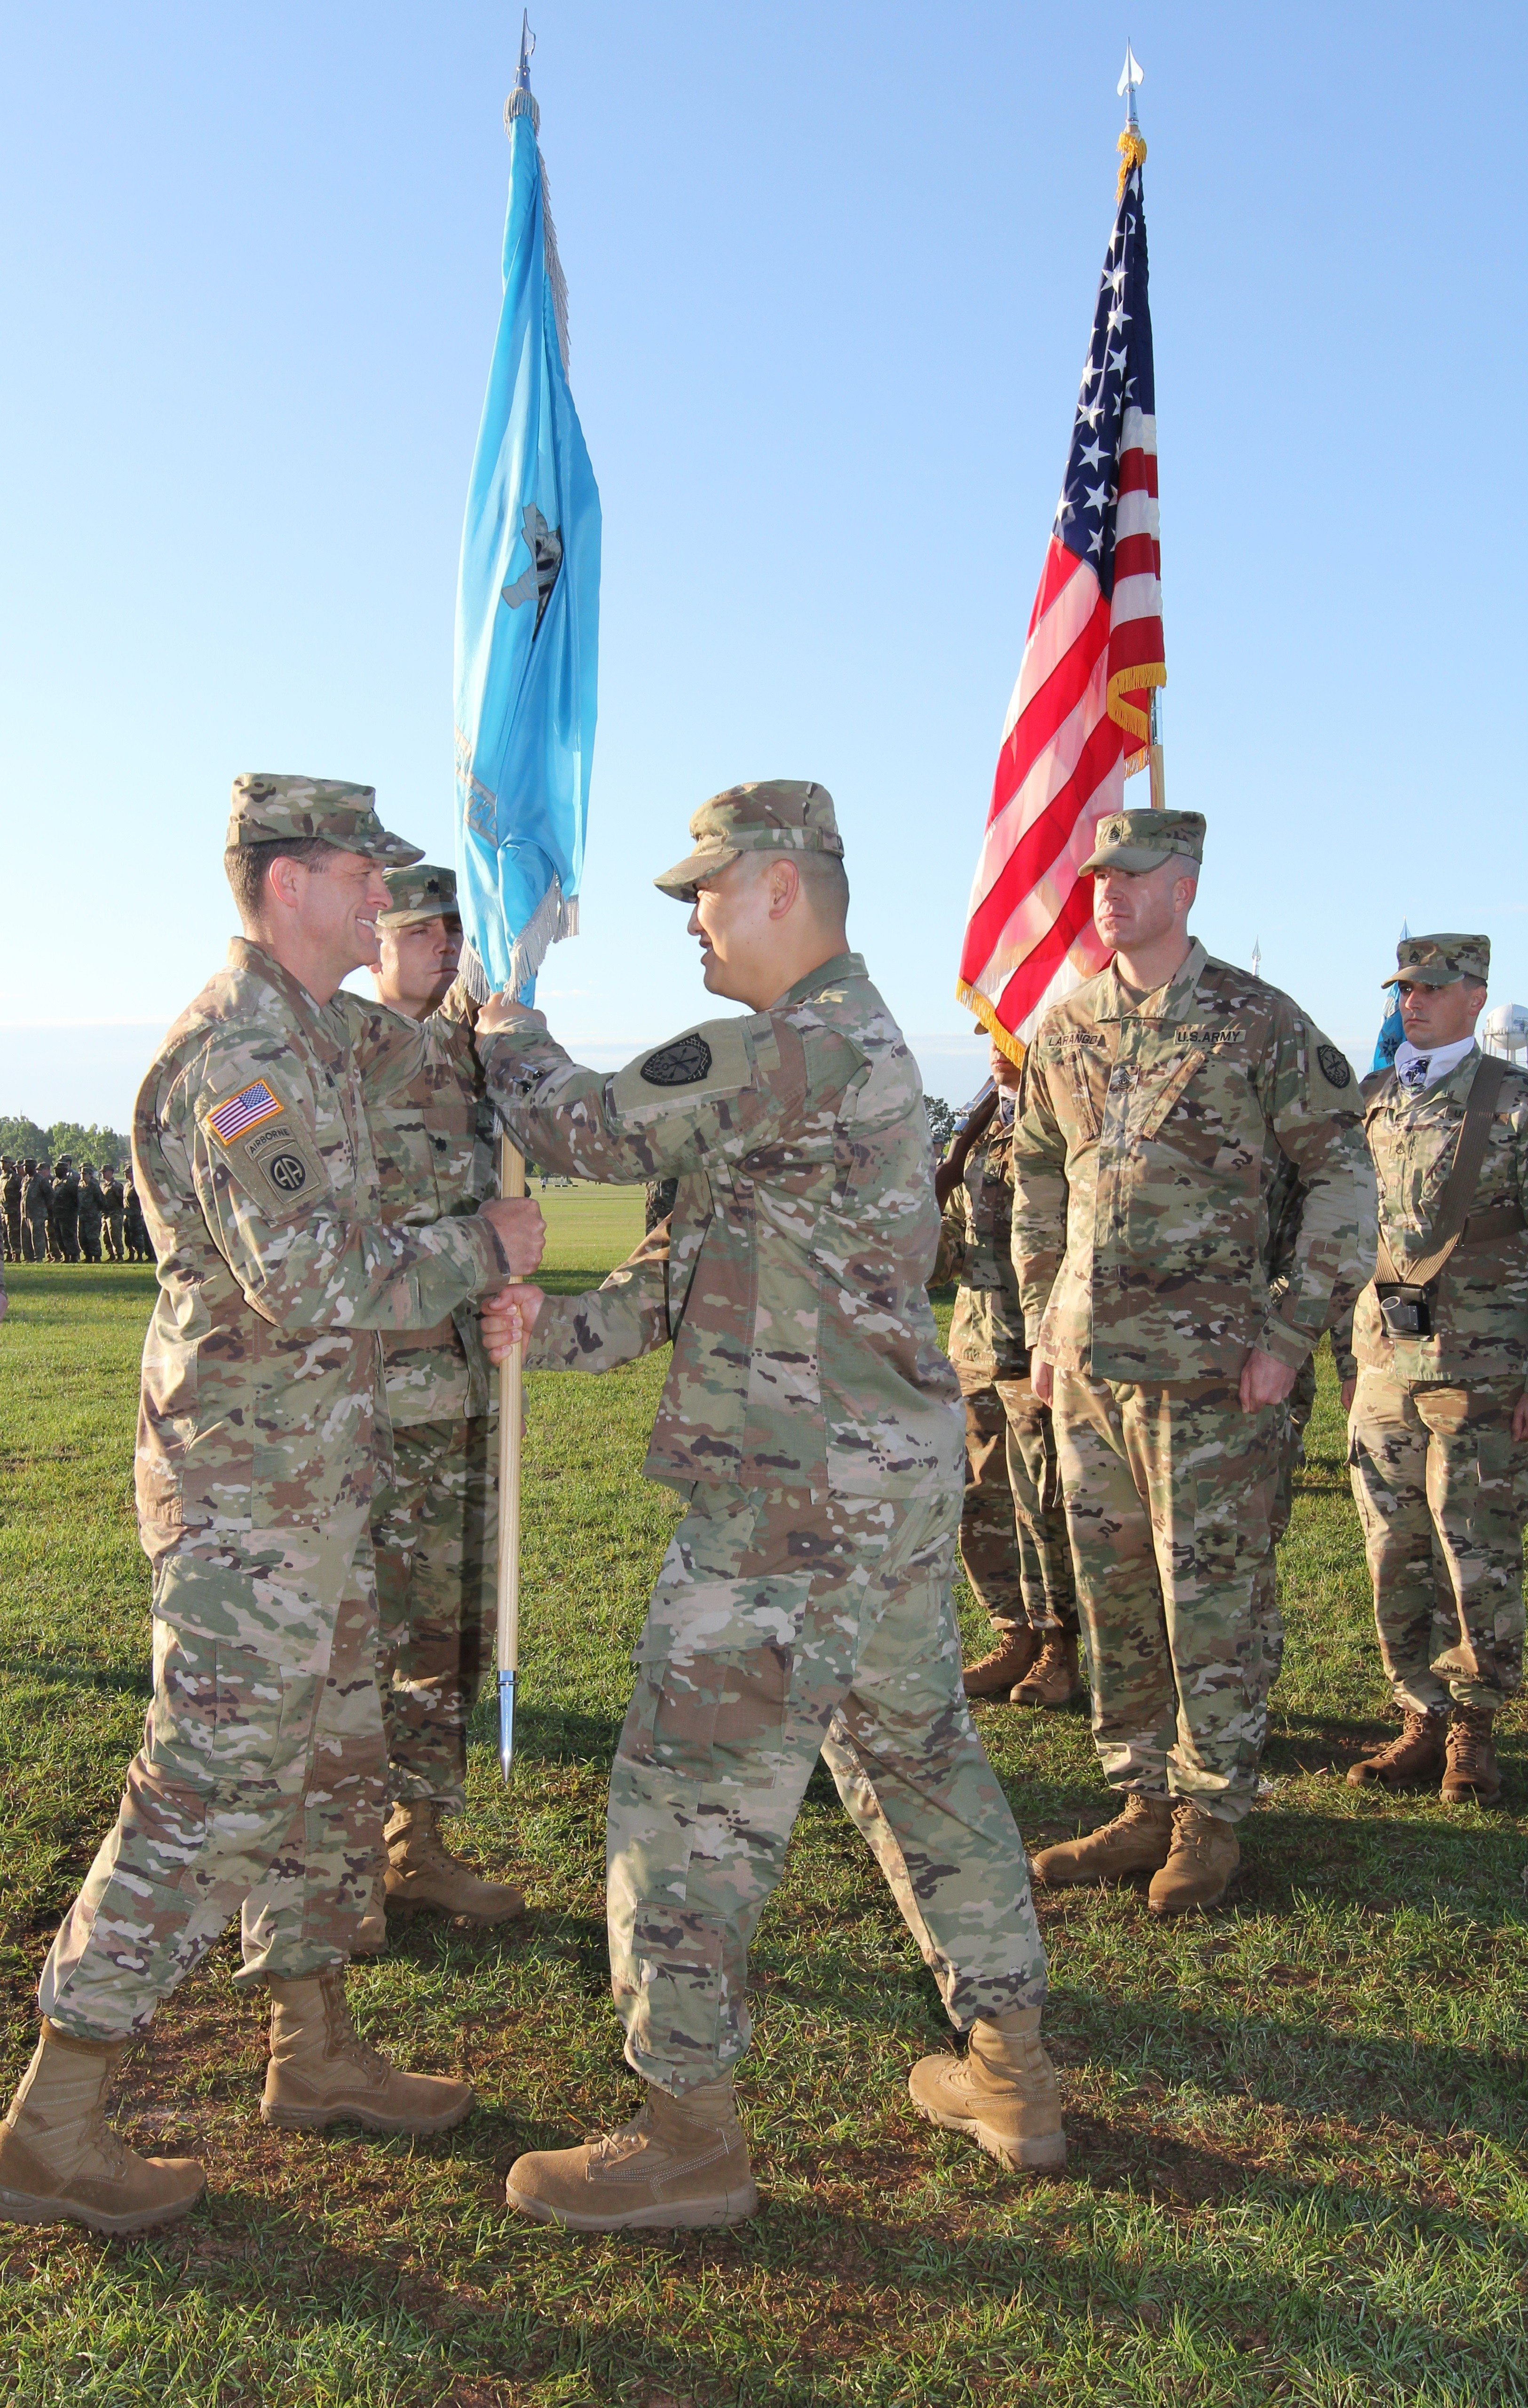 Cyber Legion A Tale Of Two Quotes Welcomes New Commander Article The United States Army